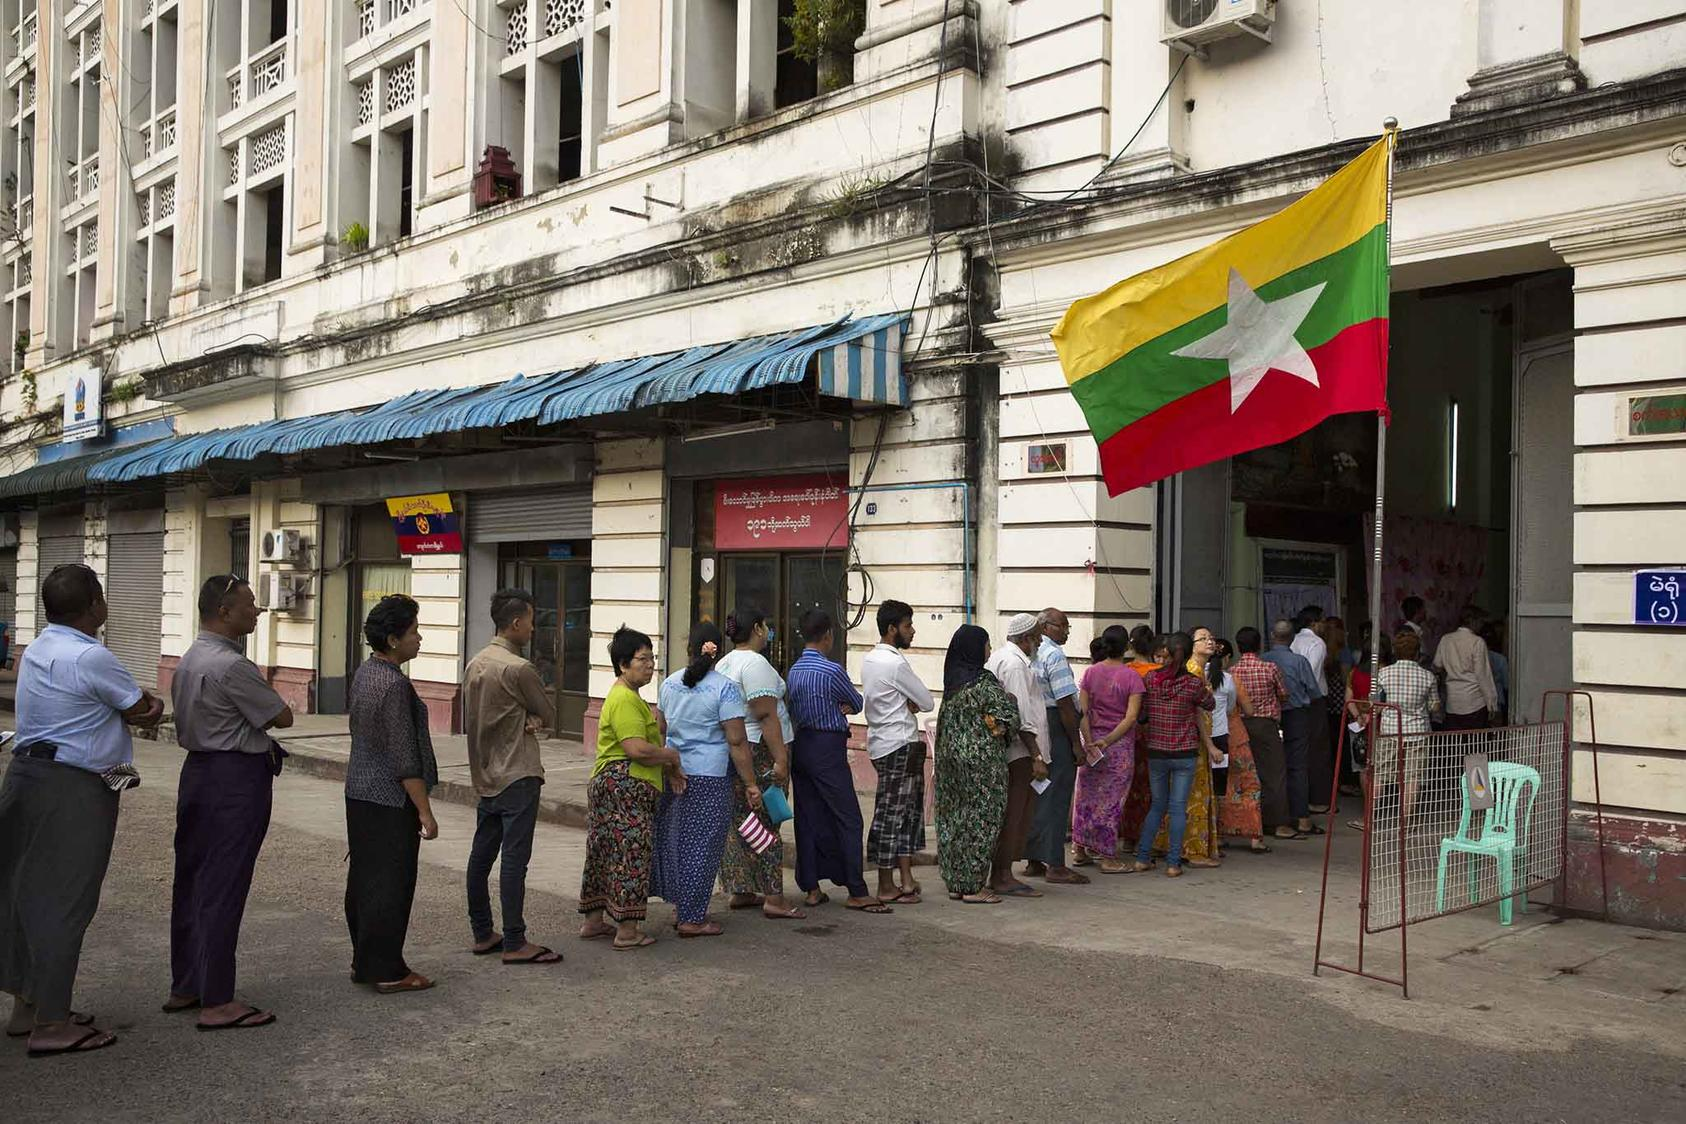 Citizens line up outside a polling station in Yangon to vote in the historic 2015 elections. (Adam Dean/The New York Times)